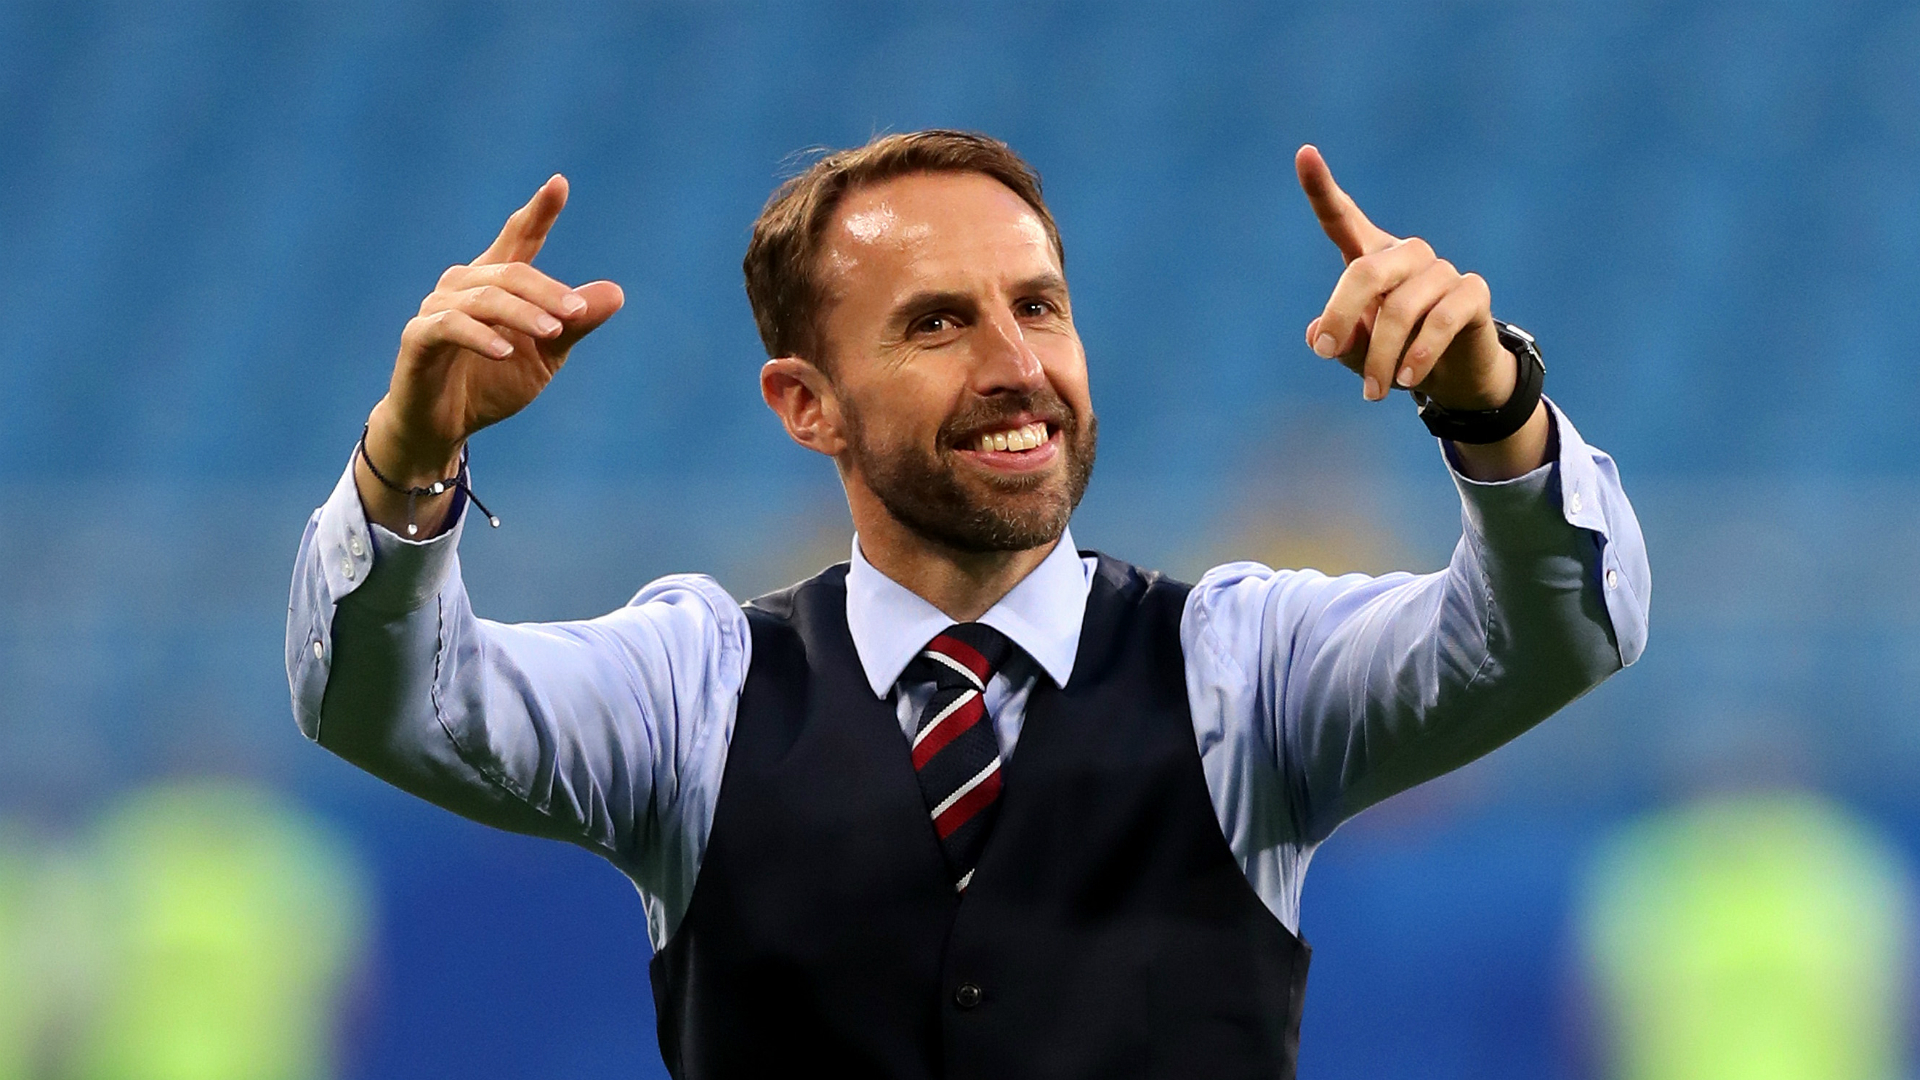 England's Gareth Southgate: Young squad 'not the finished article' yet